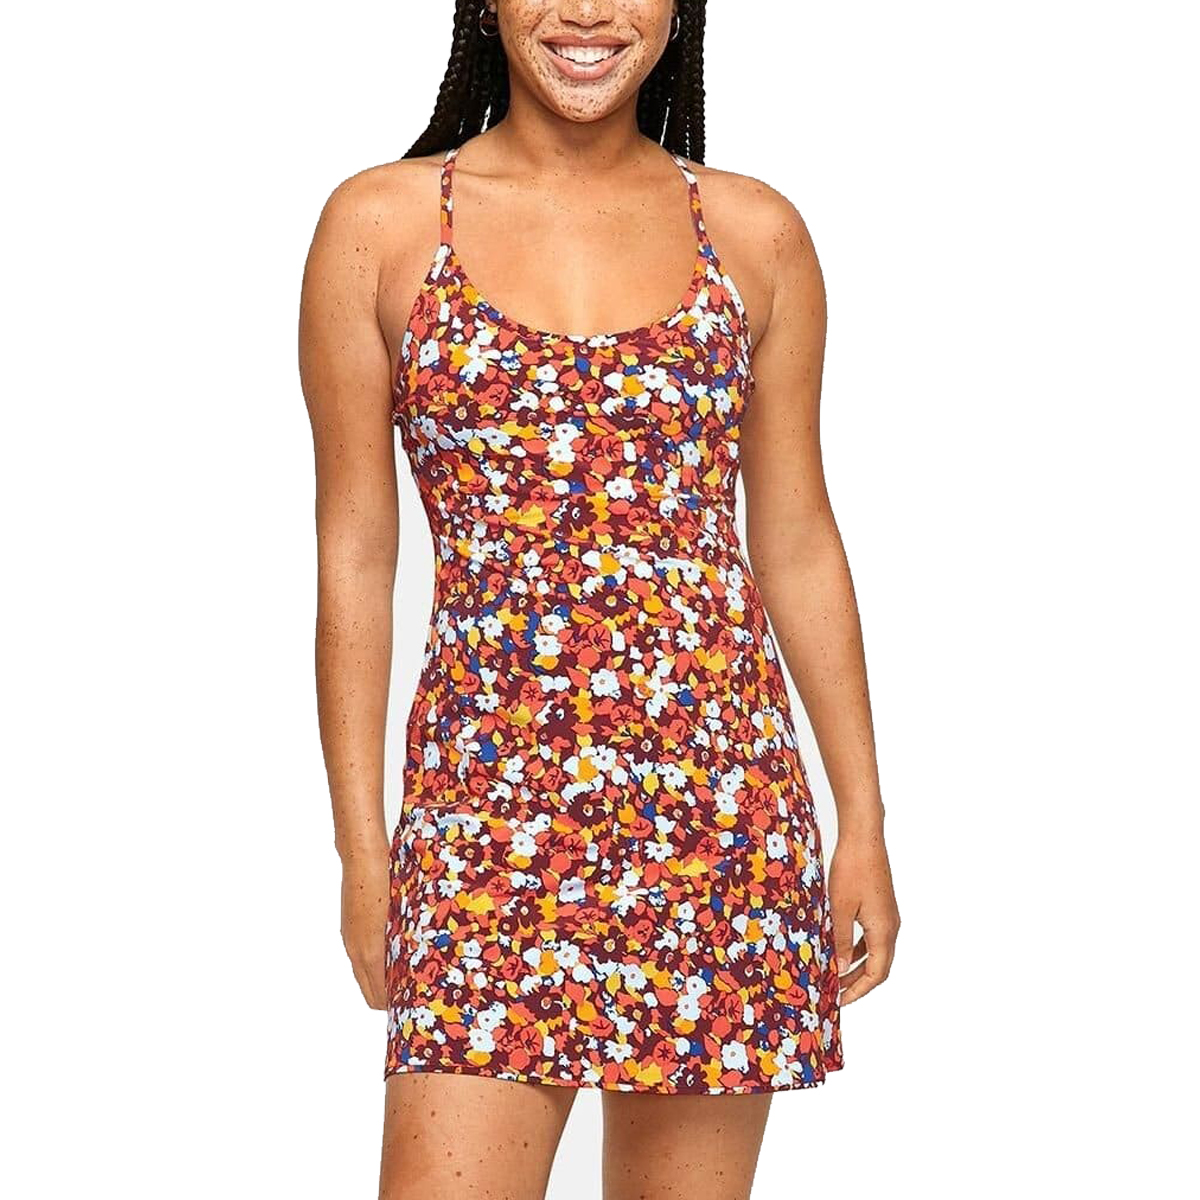 Outdoor Voices The Exercise Dress in Paprika Blooms